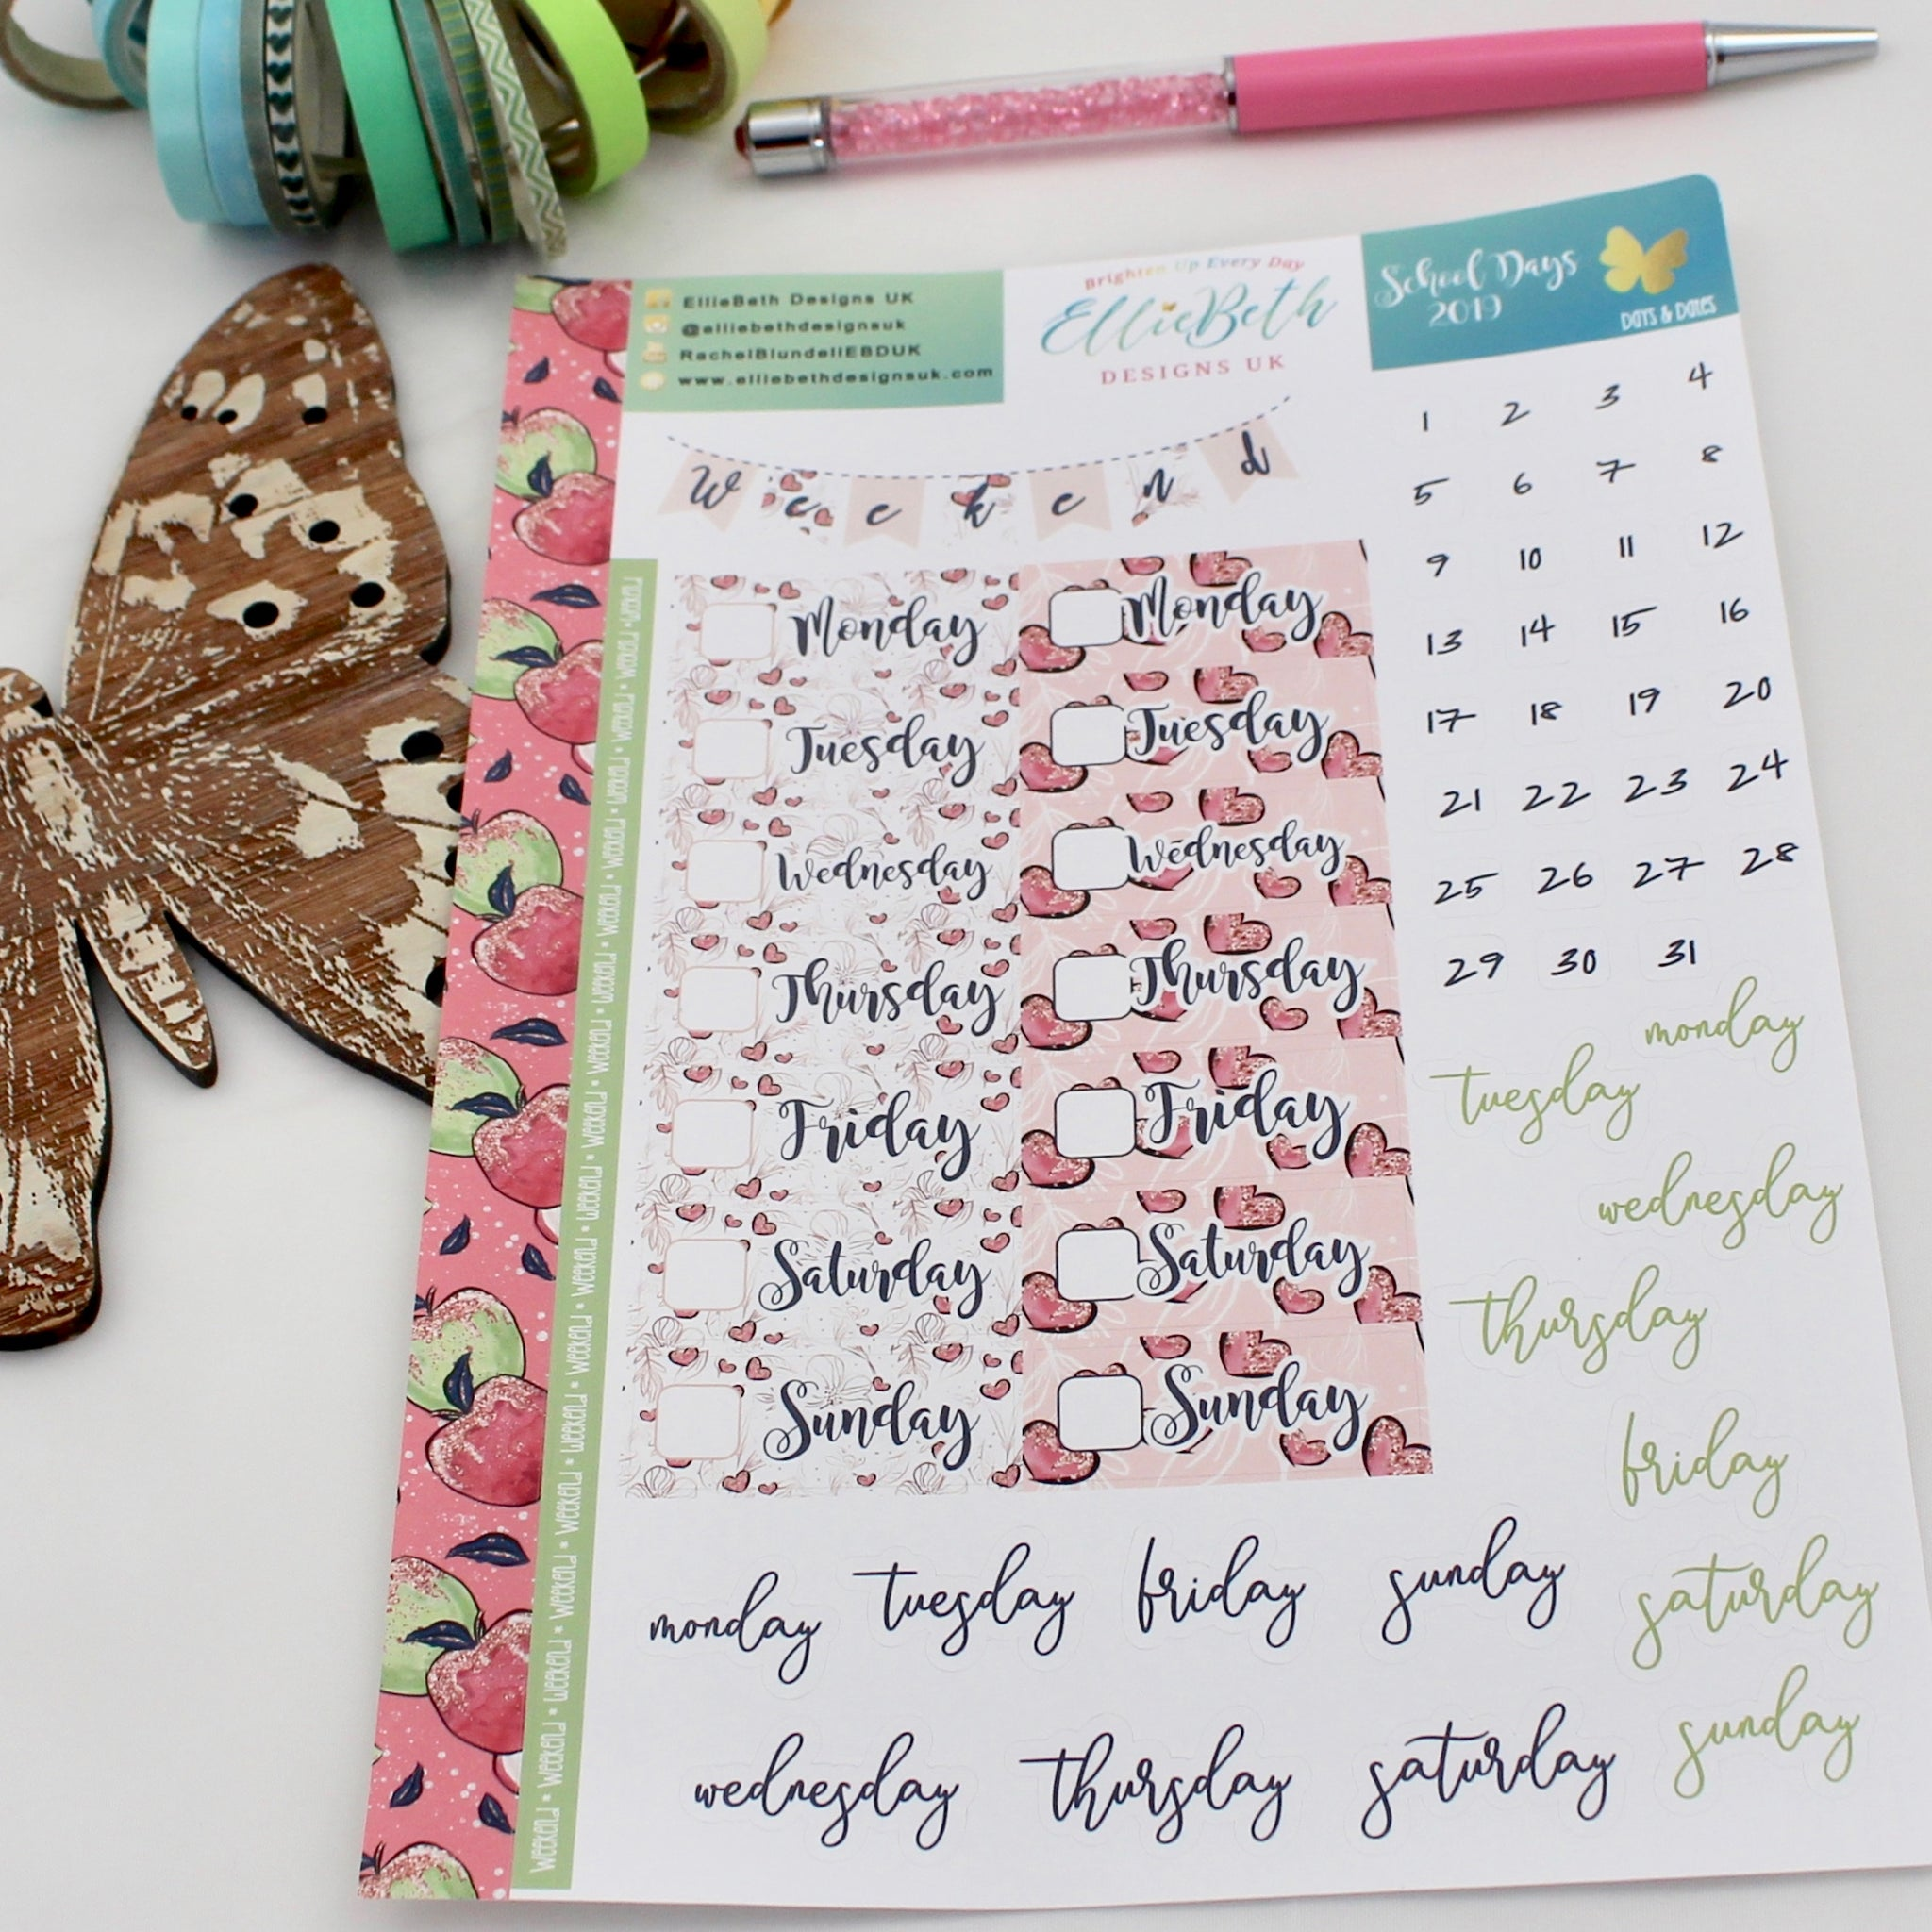 'School Days' - Days and Dates -  A5 binder ready planner stickers